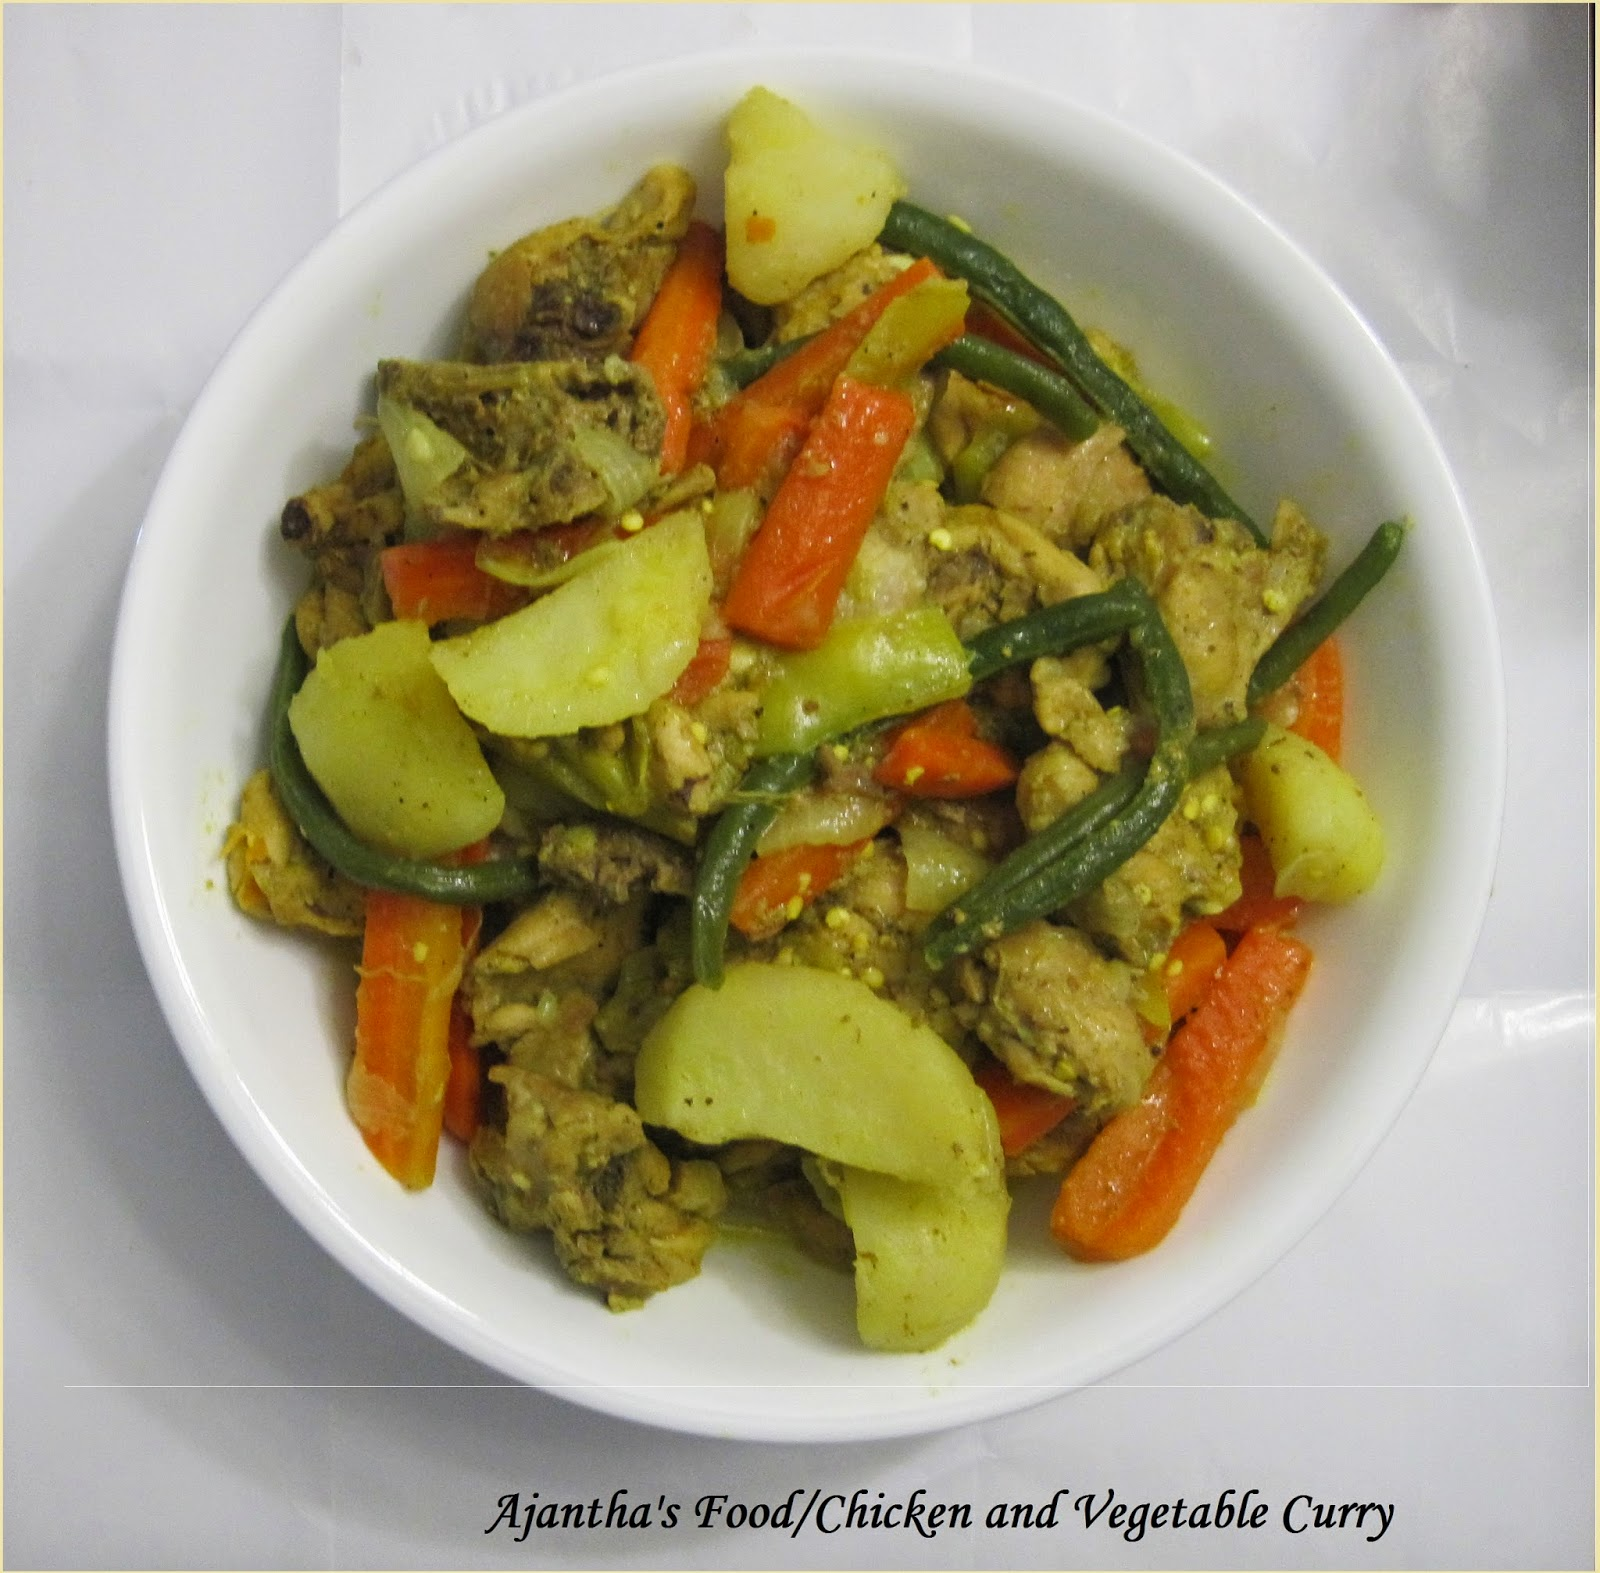 Ajantha's Food/Chicken and Vegetable yellow Curry